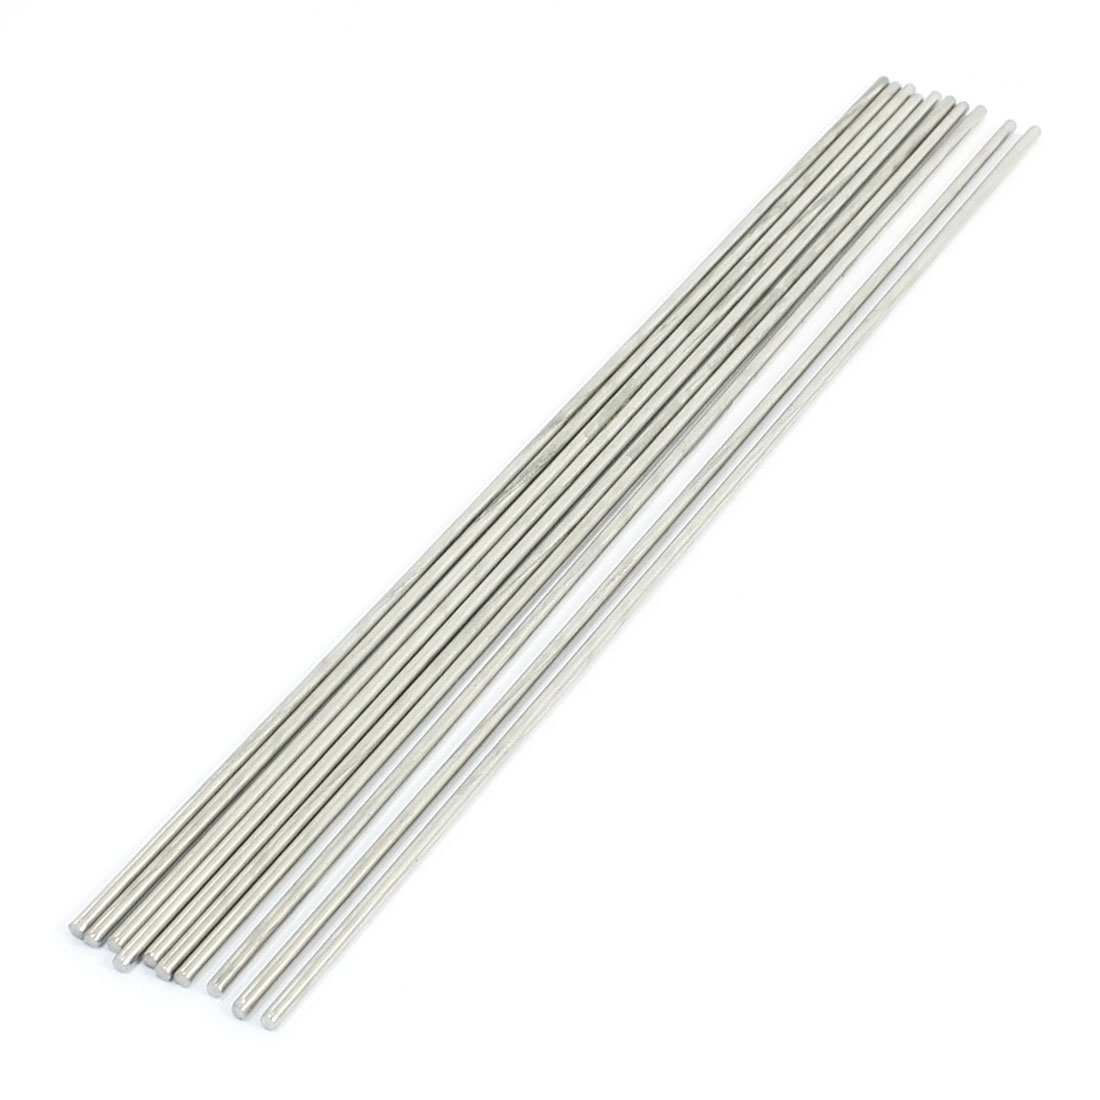 10PCS RC Smart Car Toy Part Stainless Steel Round Bar Shaft 250x 2.5mm